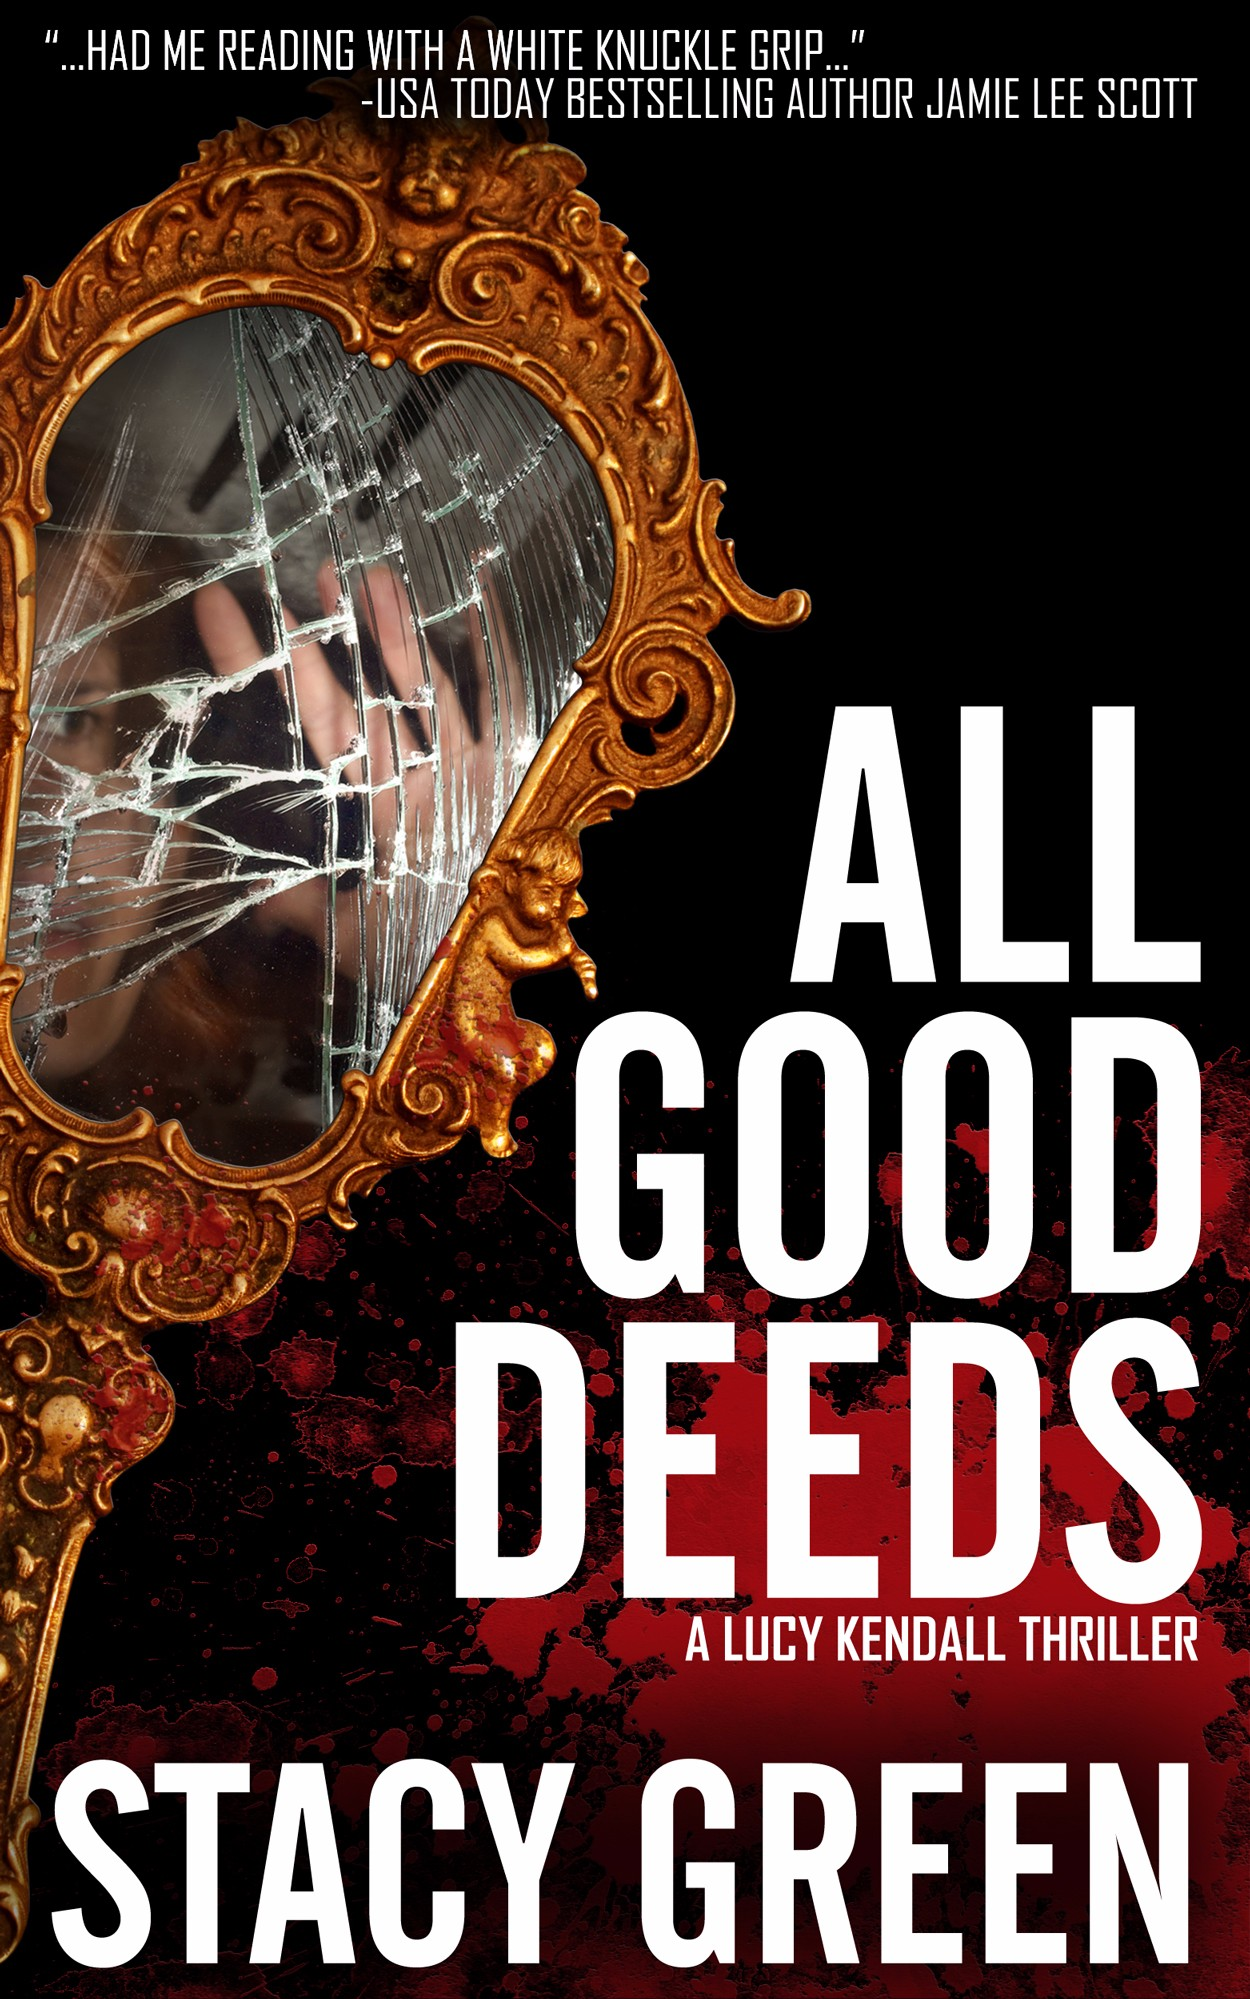 StacyGreen-AllGoodDeeds-FINAL-NOOK